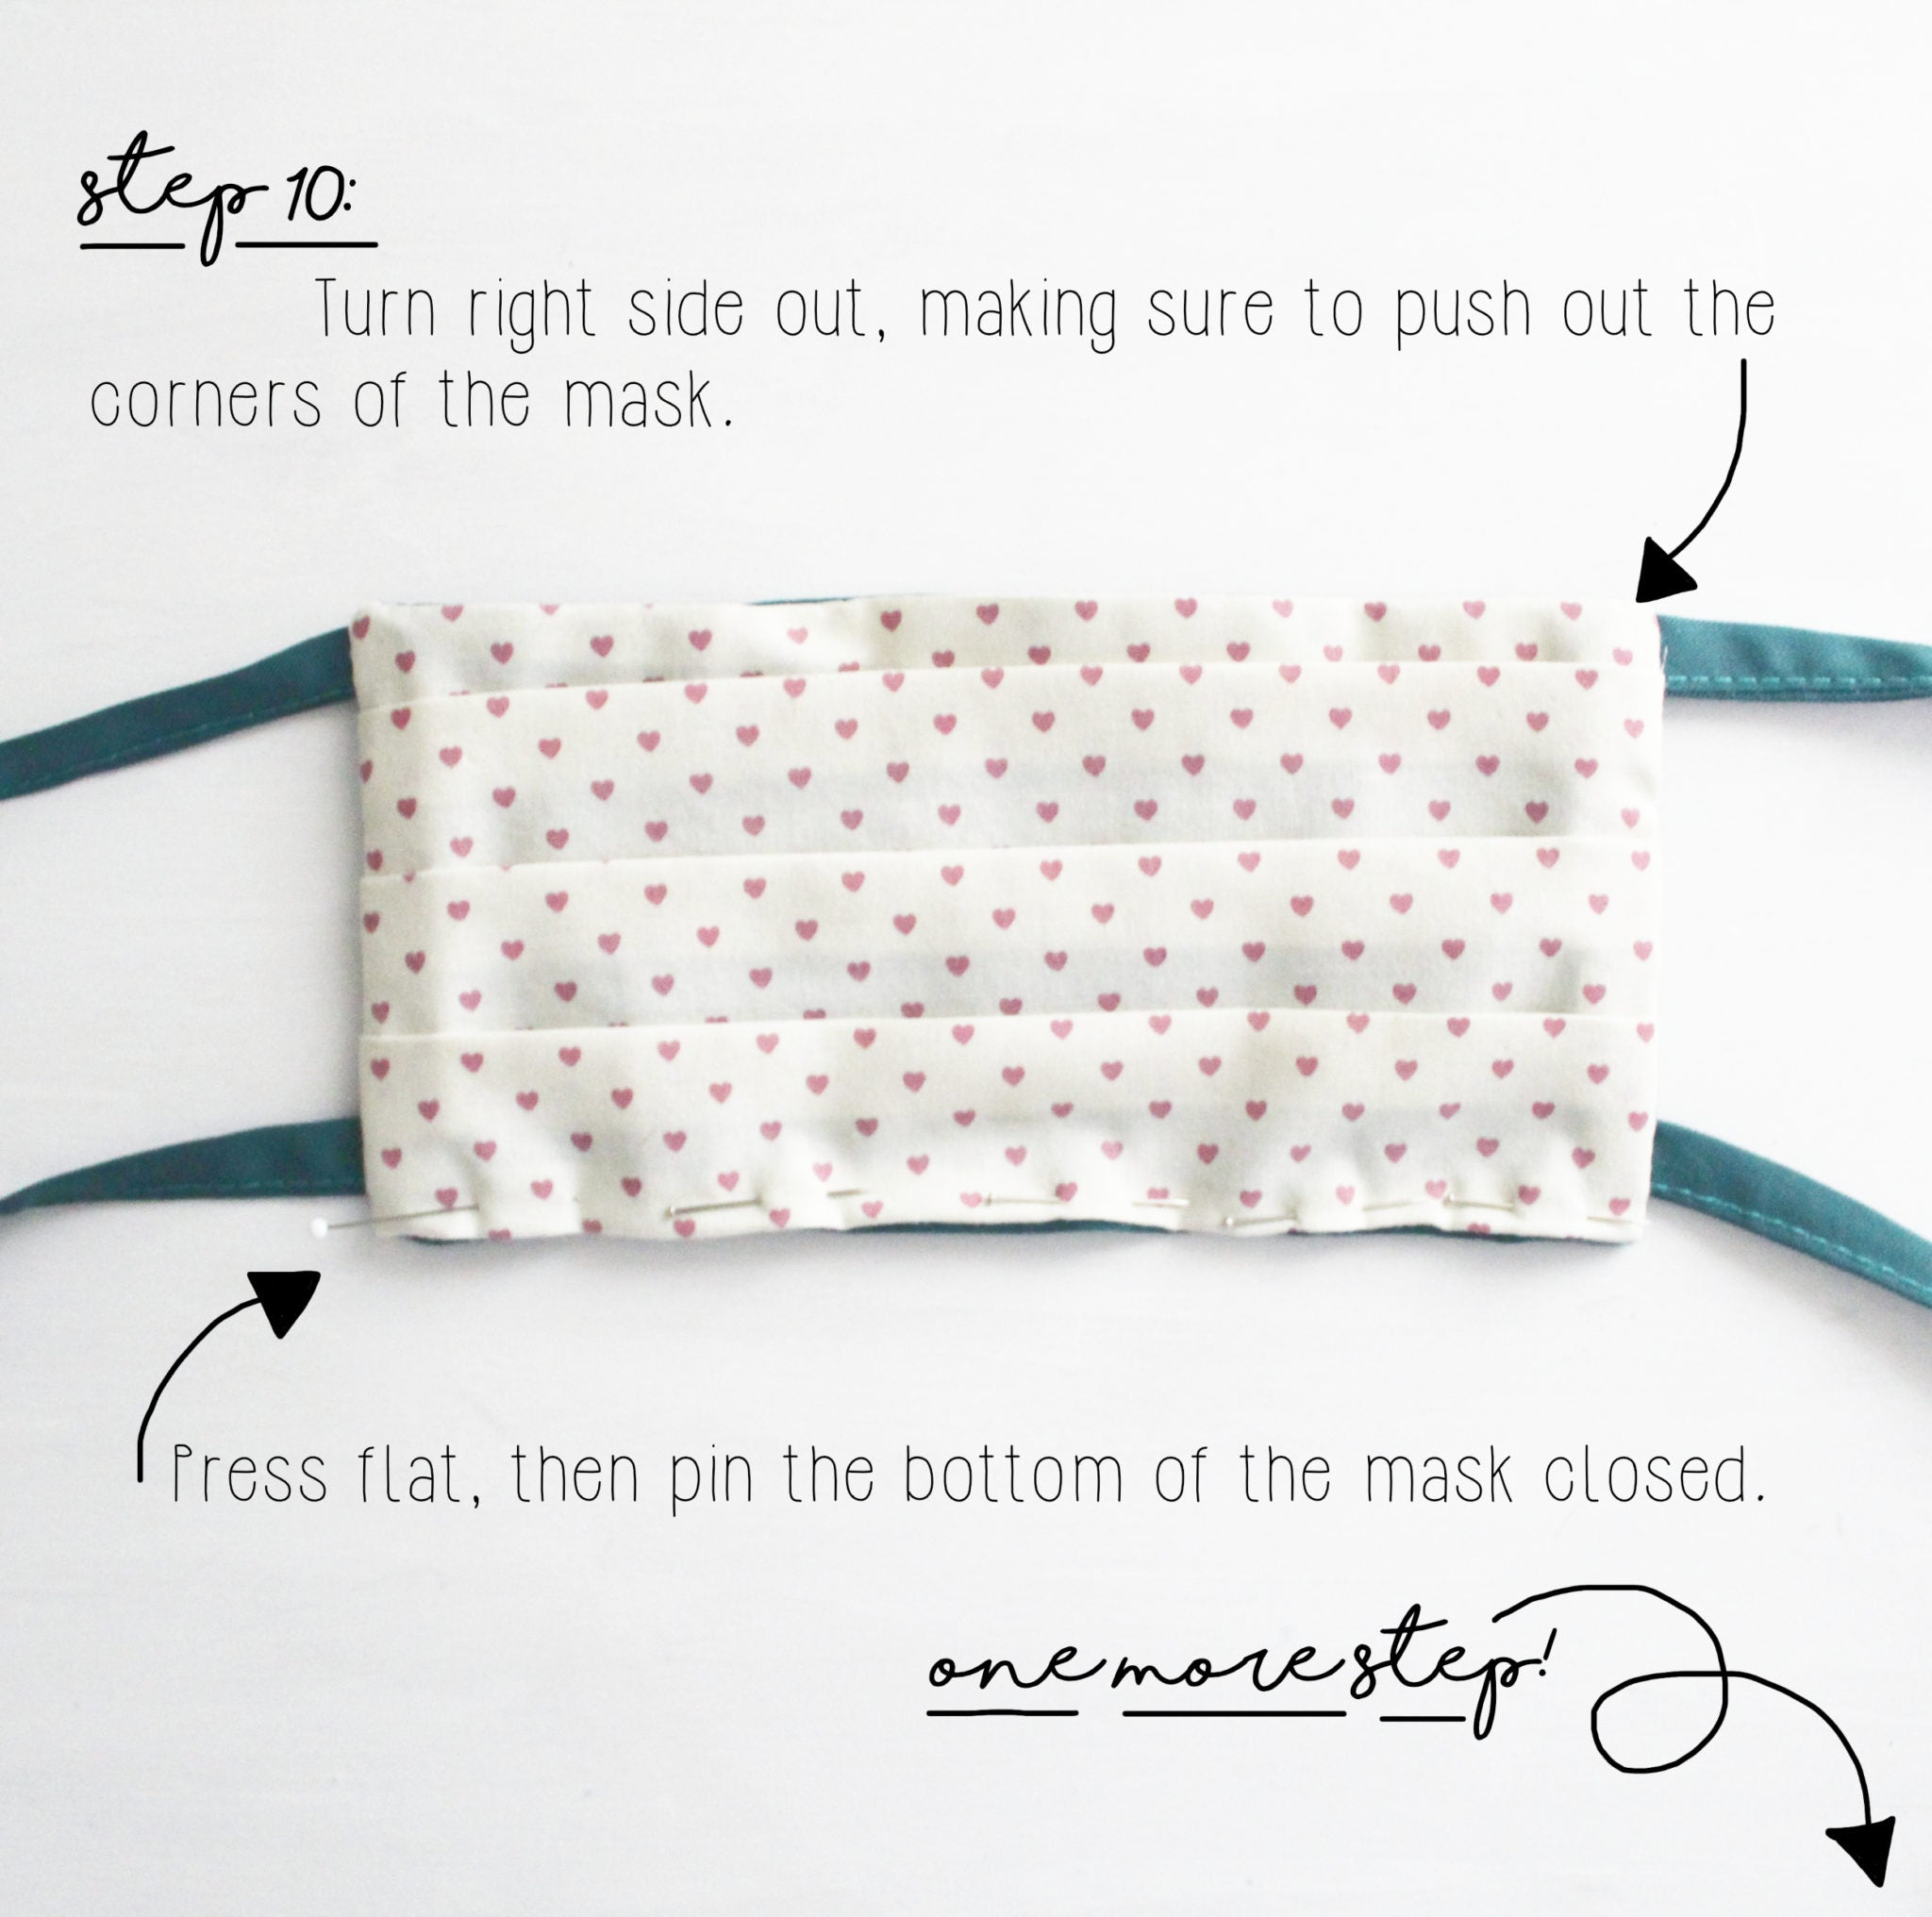 How To Make A Face Mask: DIY Sewing Tutorial, Step 10